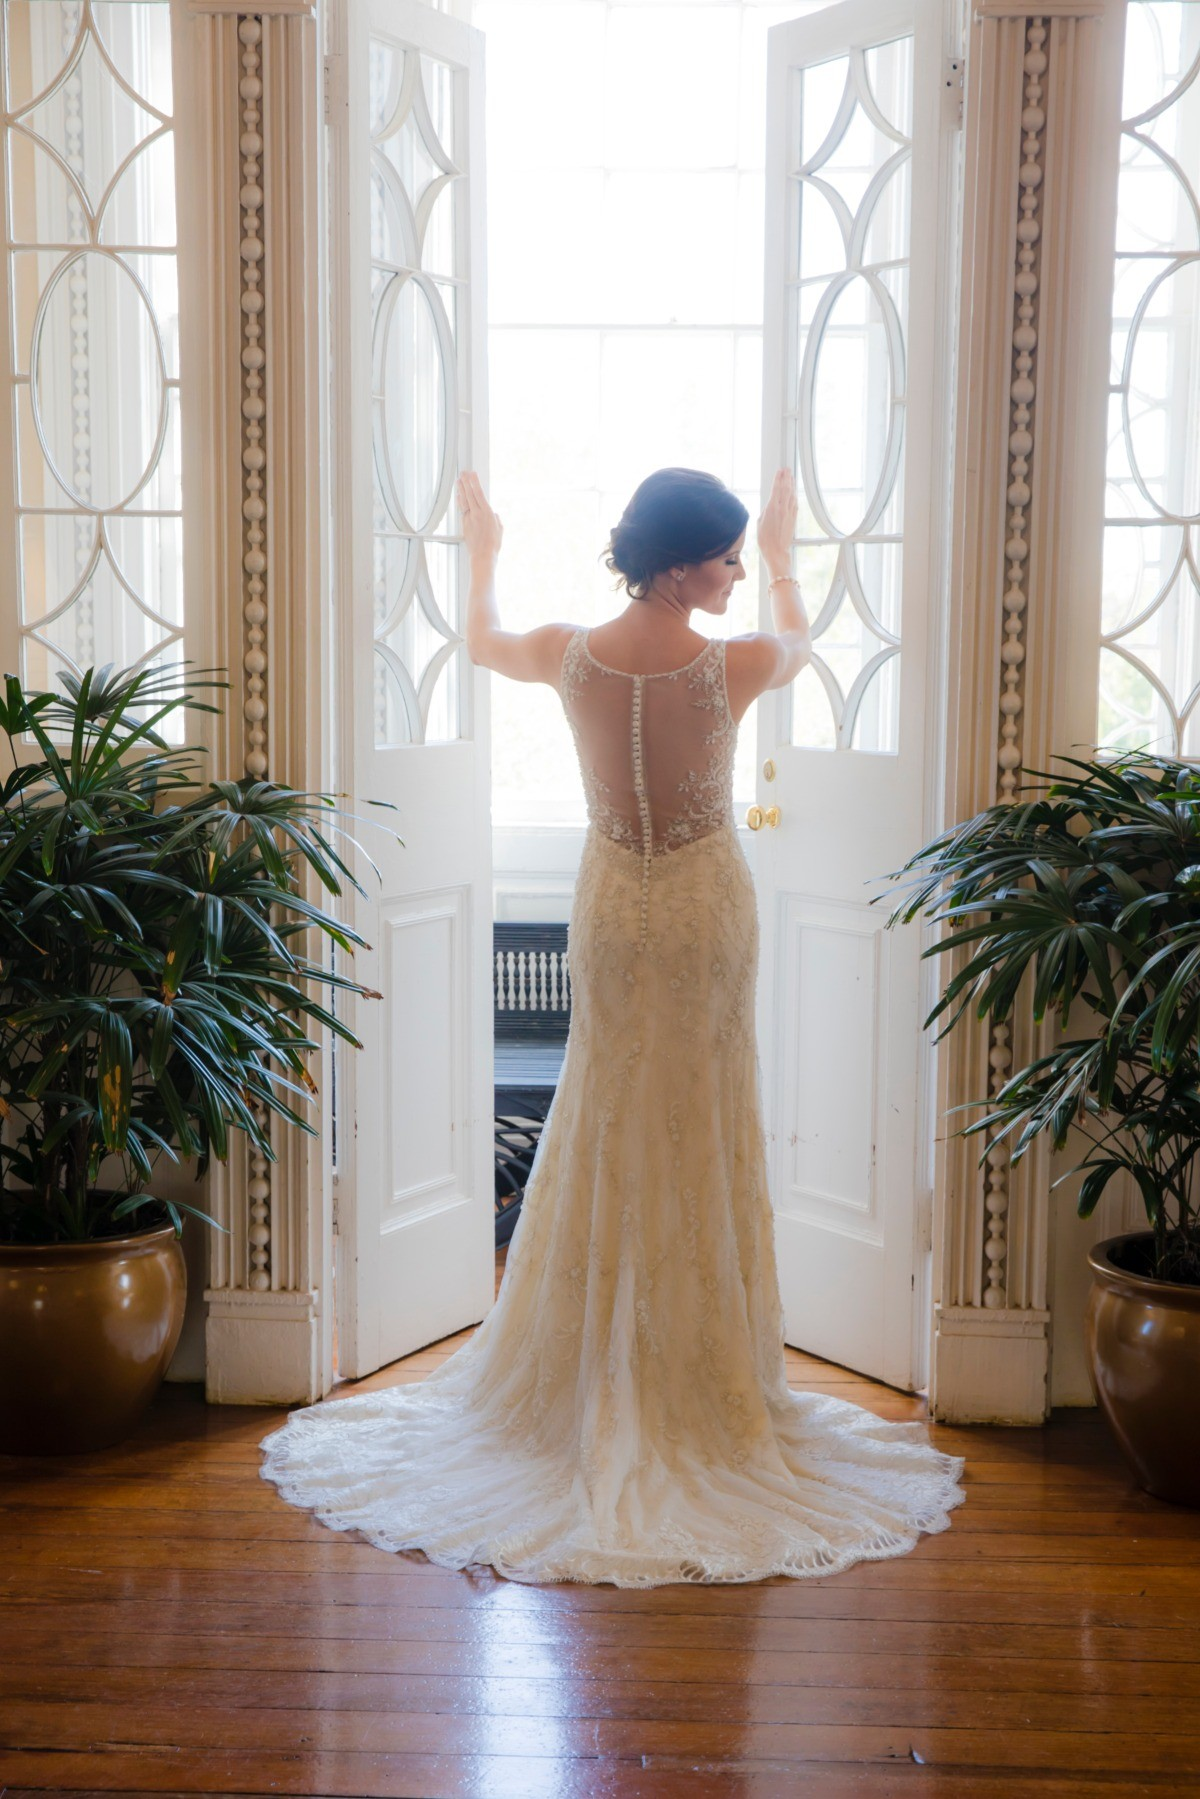 The Bridal Boutique of Mount Pleasant